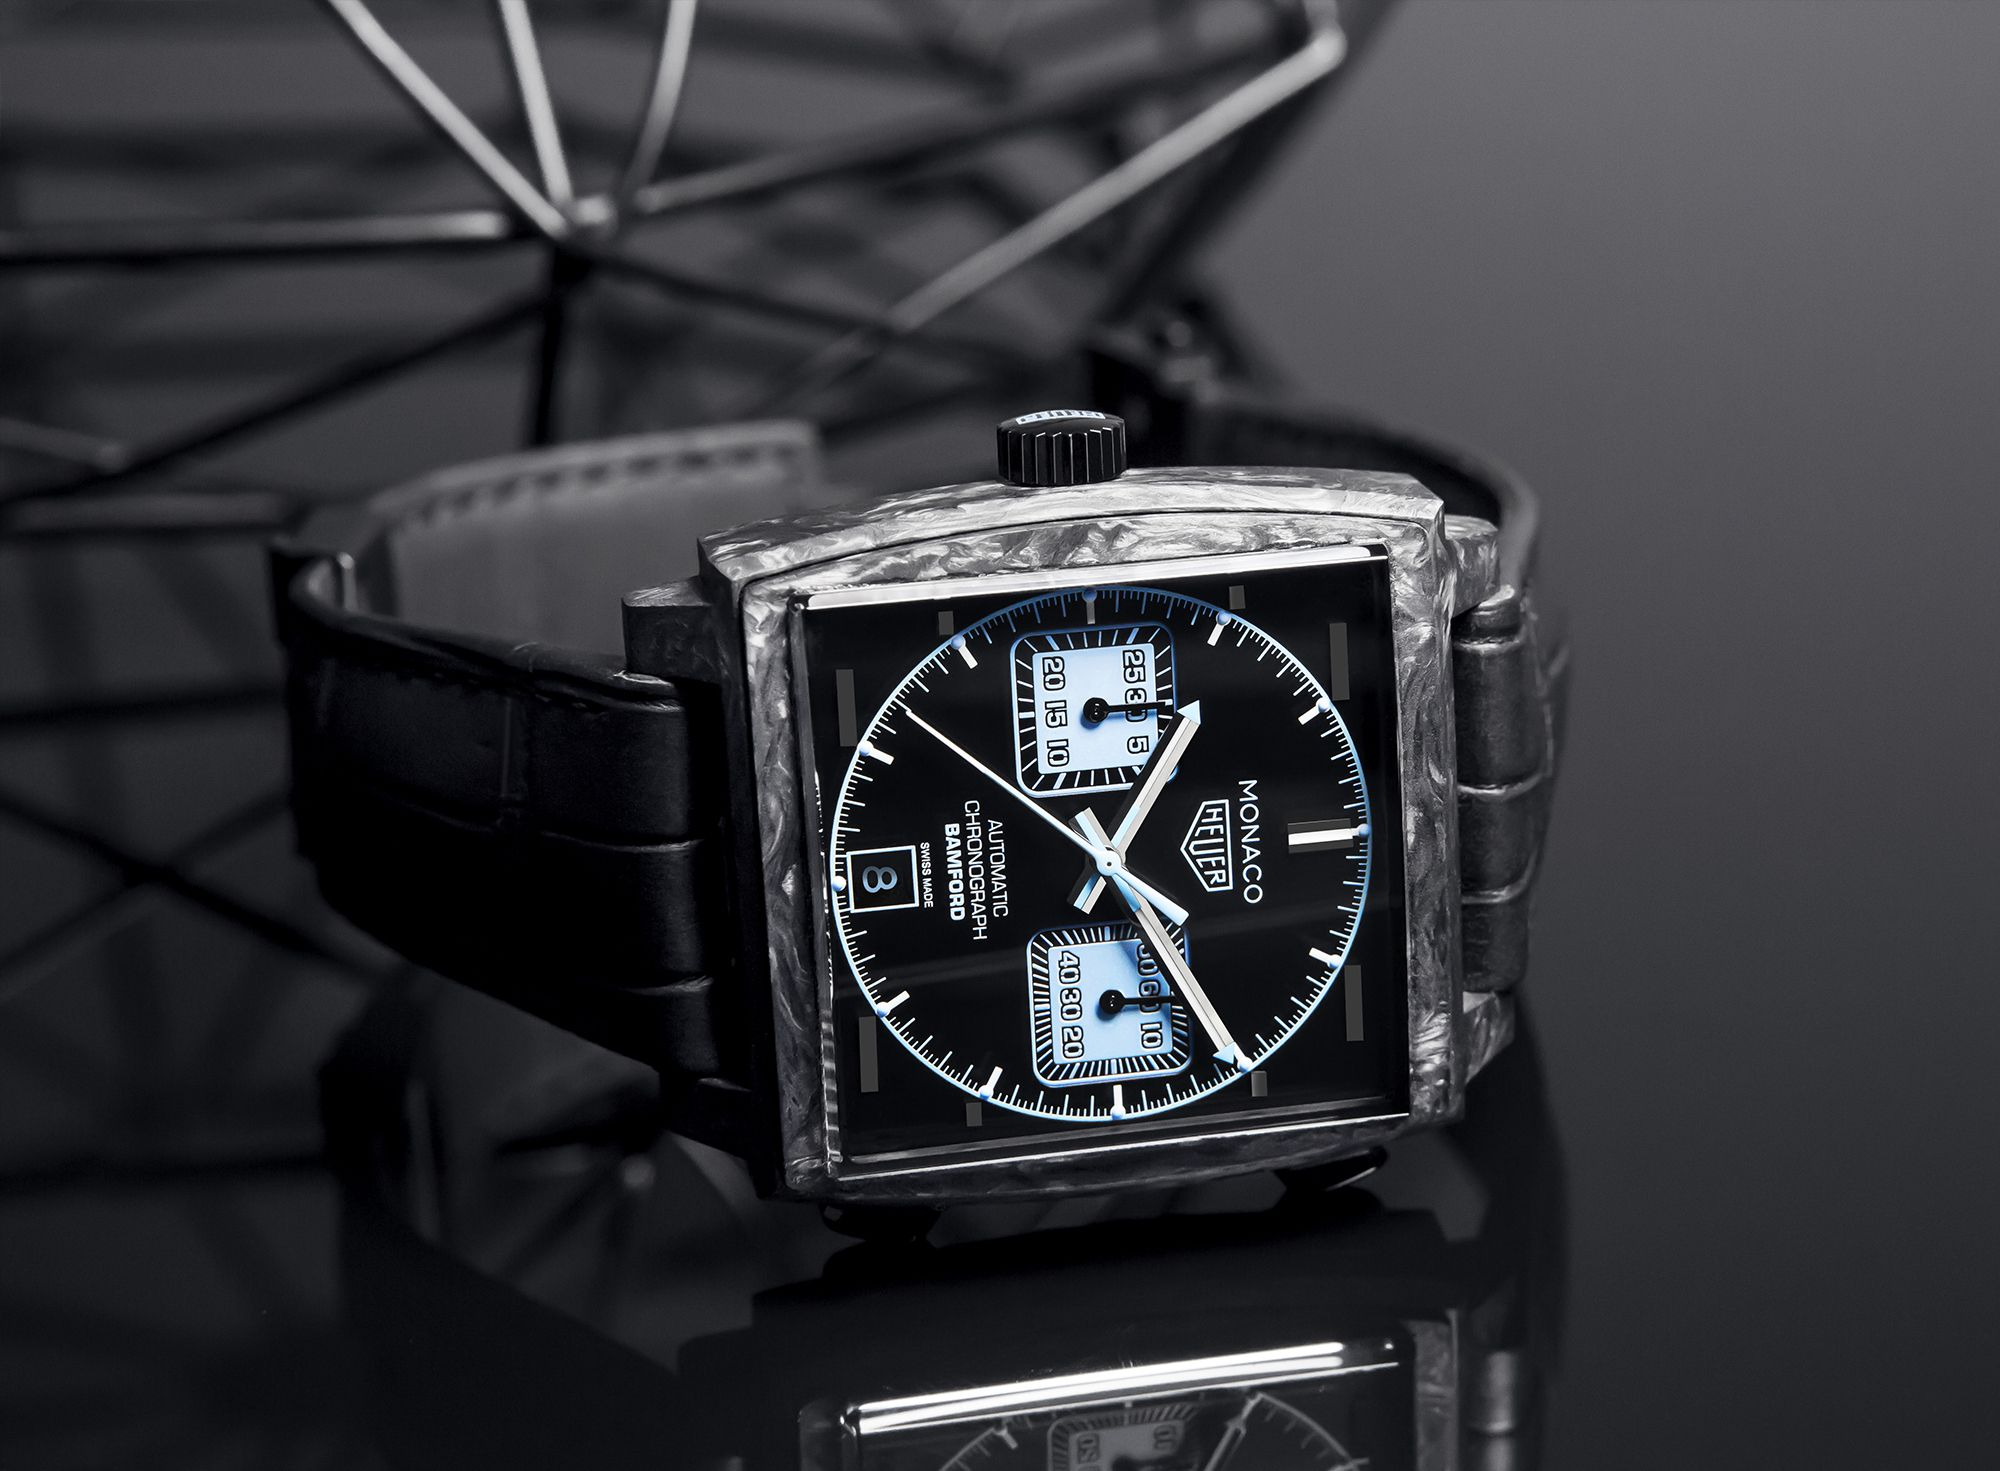 Baselworld 2018 | BAMFORD WATCH DEPARTMENT RINNOVA L'ICONICO TAG HEUER MONACO